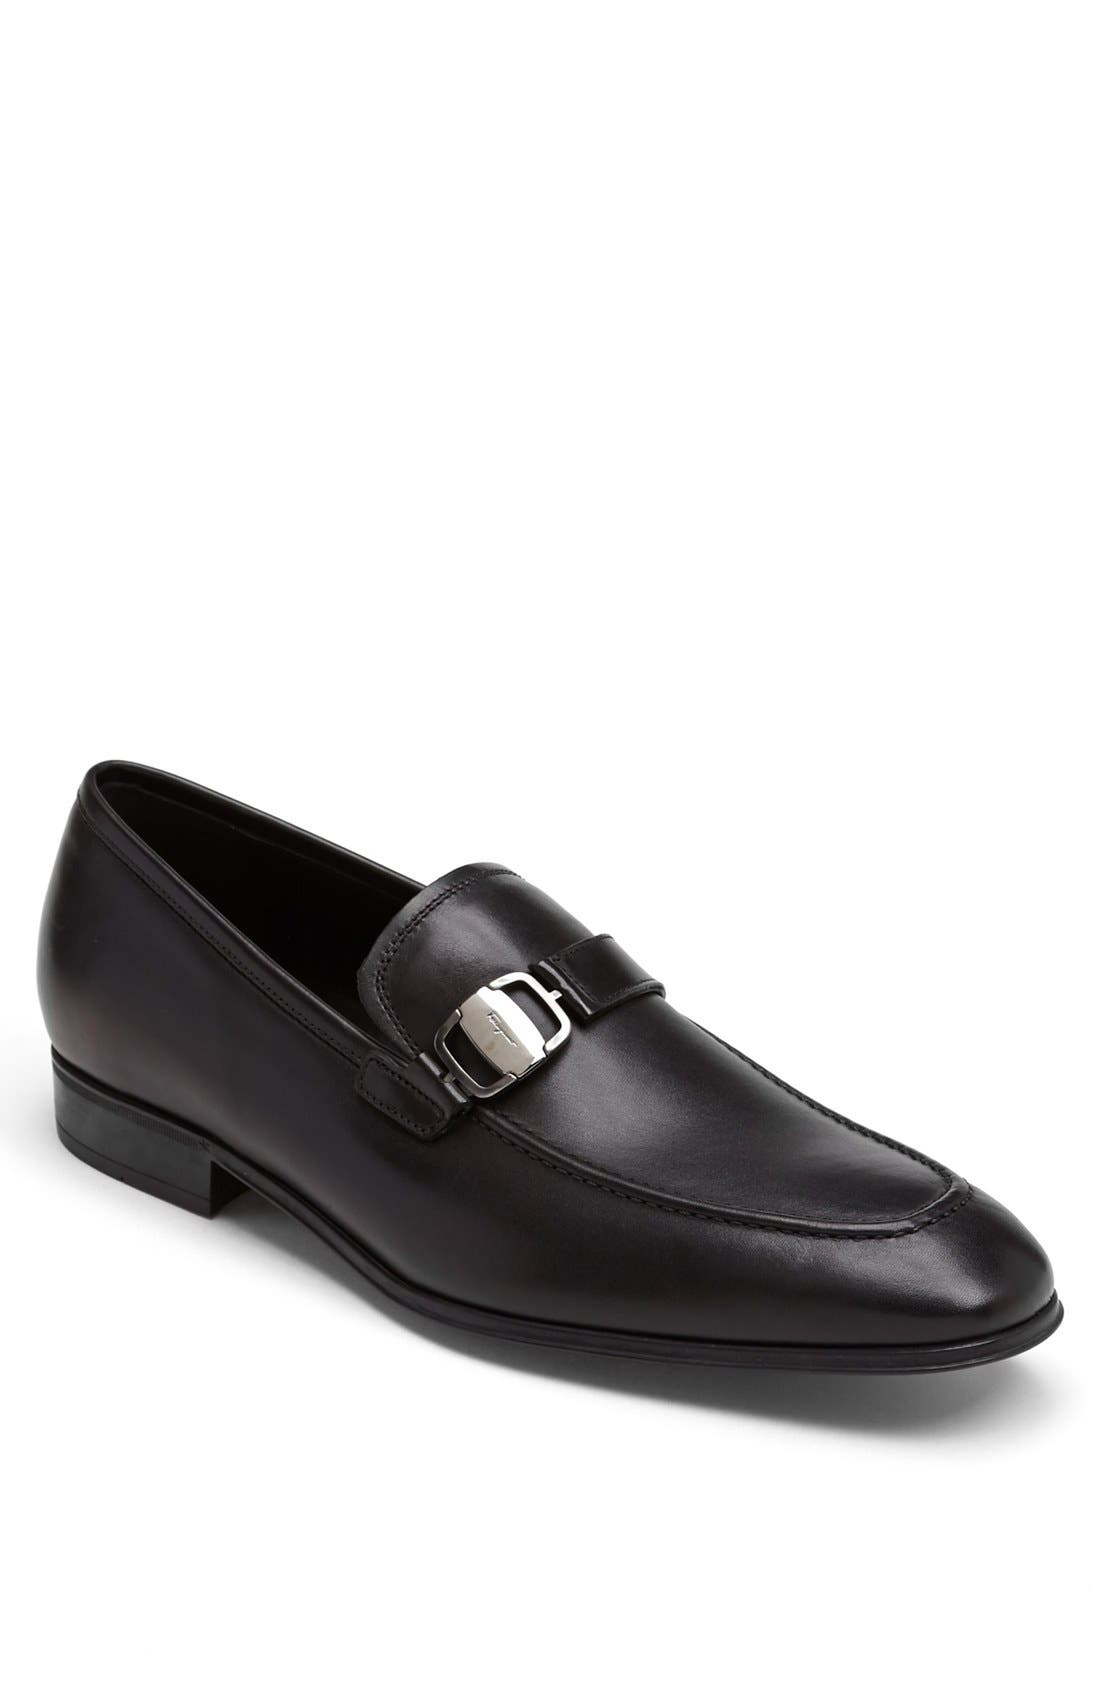 Main Image - Salvatore Ferragamo 'Francisco' Loafer